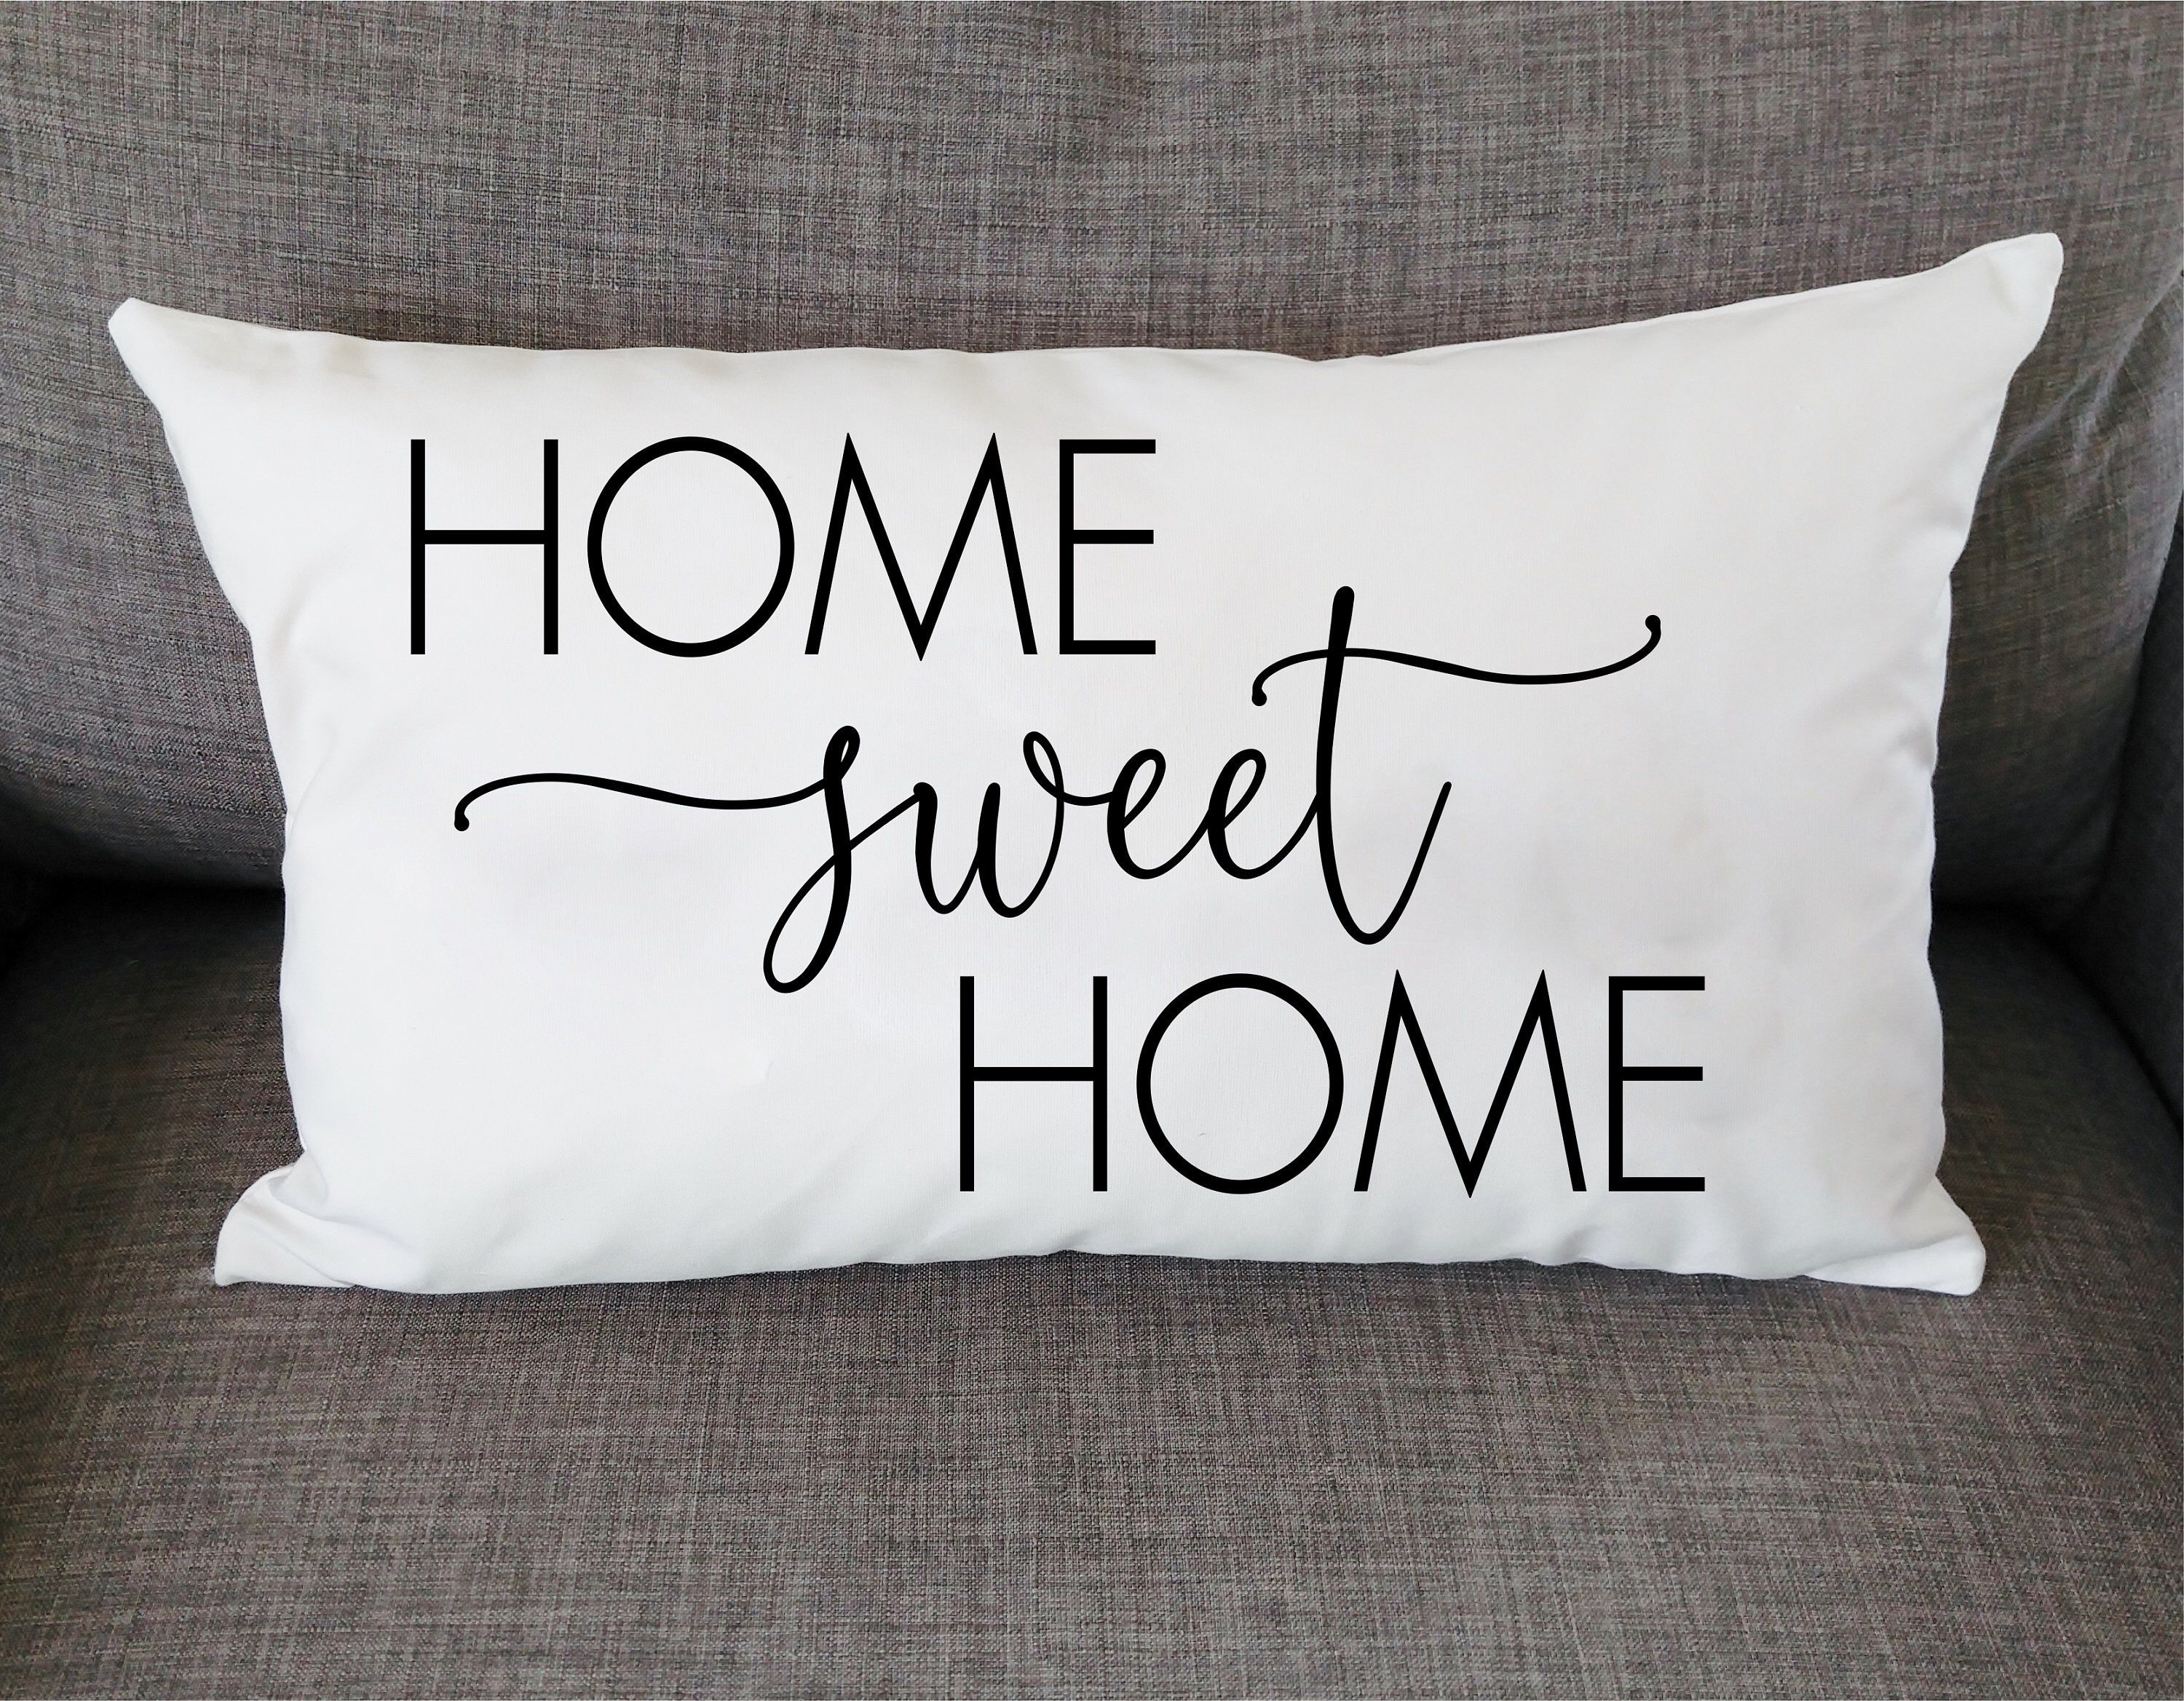 Home Sweet Home Throw Pillow Cover Housewarming Gift New